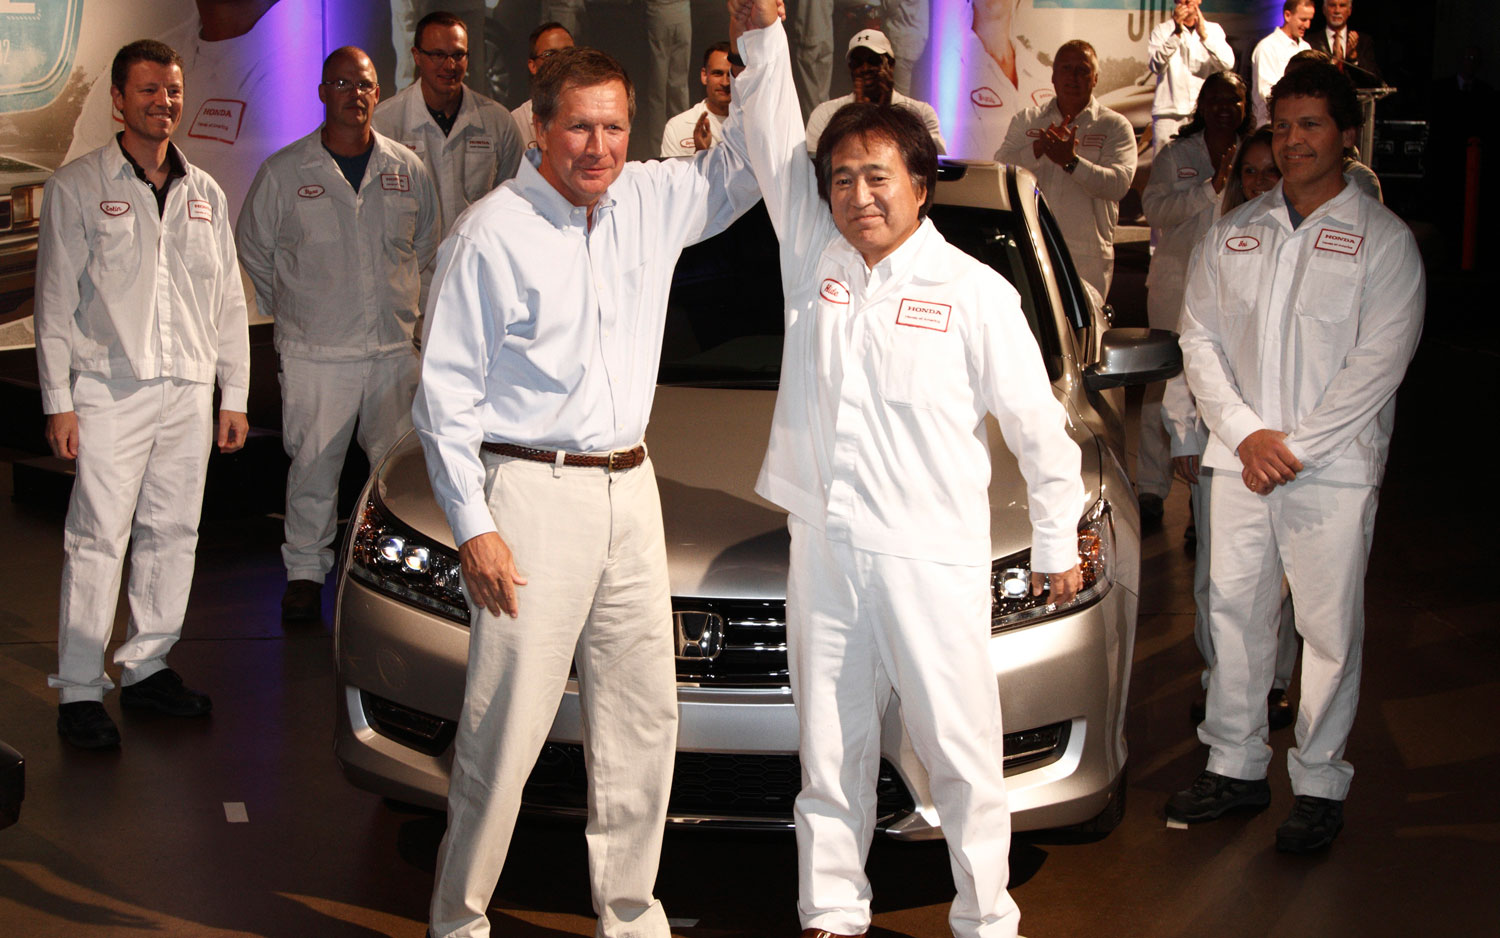 2013 Honda Accord Production With Ohio Governor1